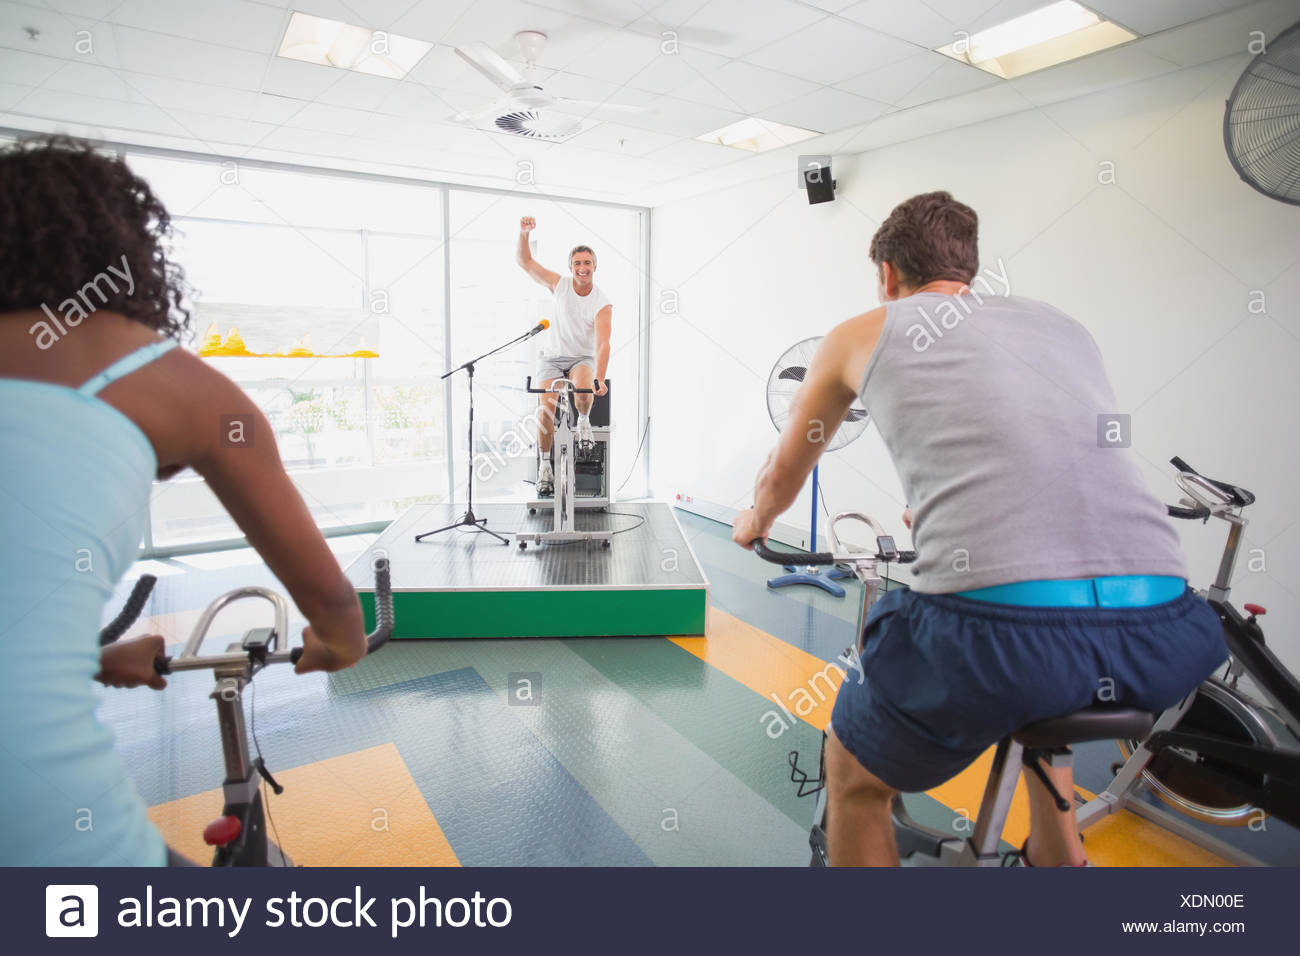 Spin class working out with motivational instructor - Stock Image